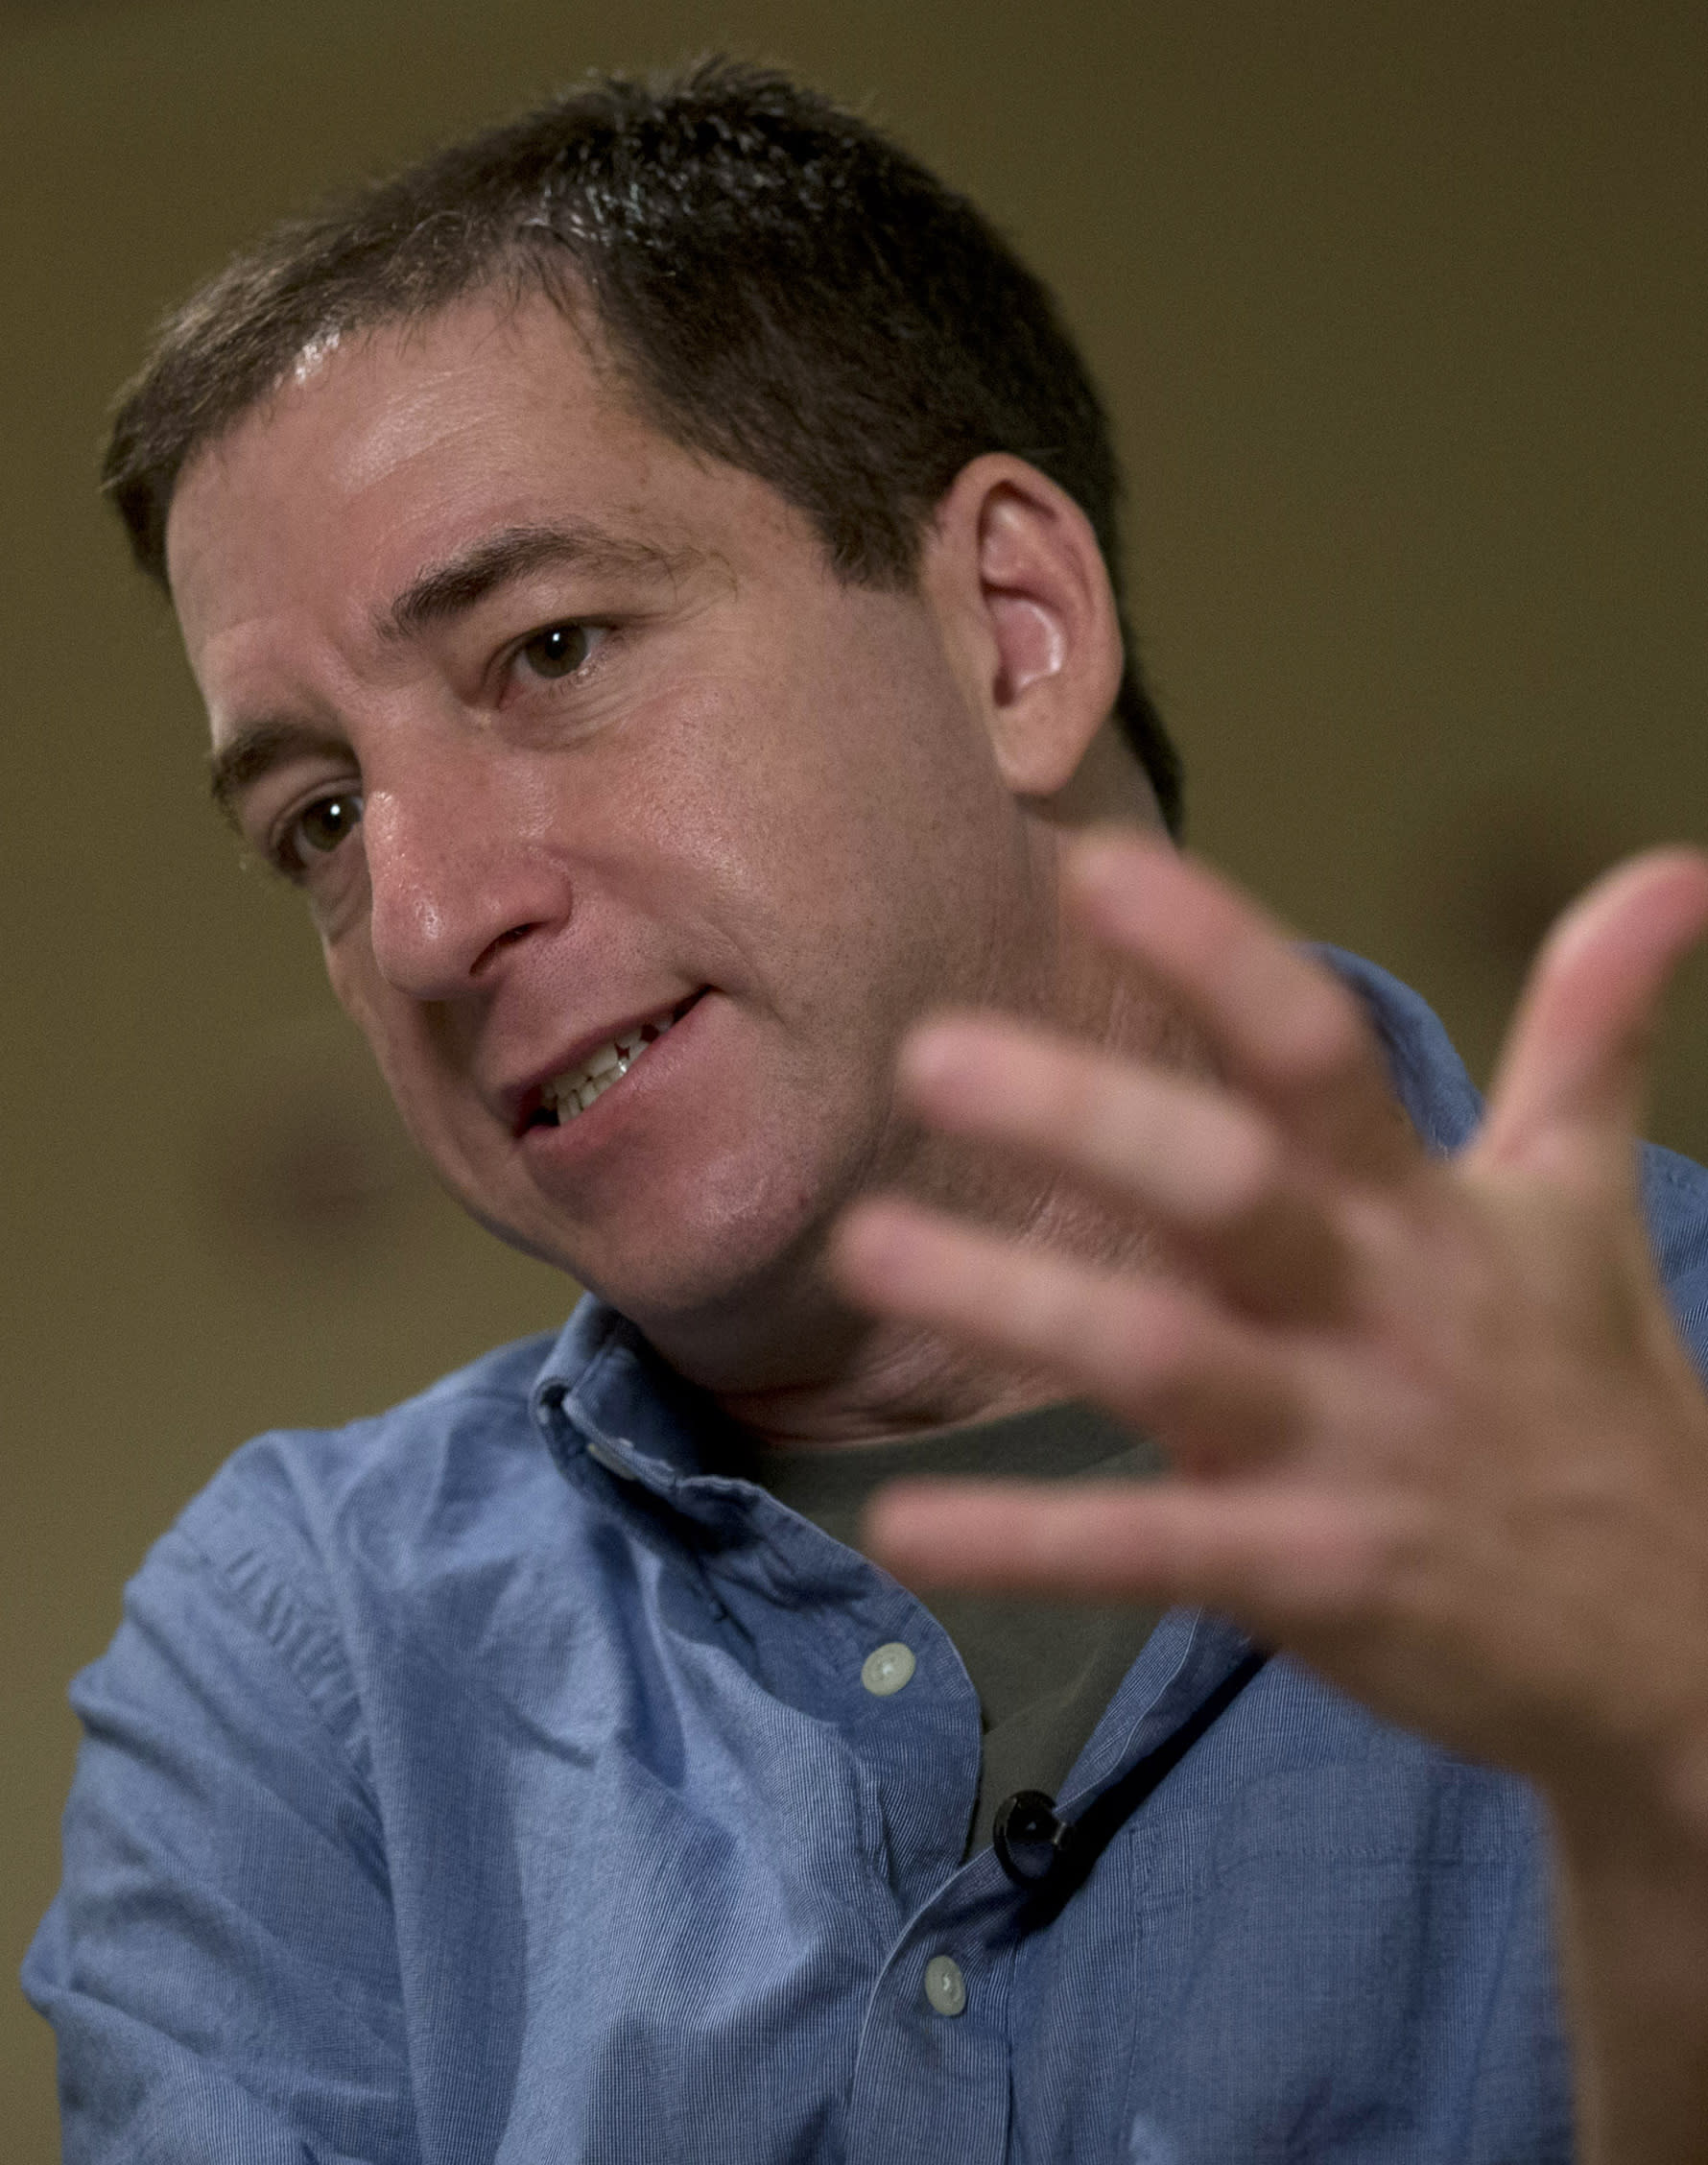 """Journalist Glenn Greenwald speaks during an interview with the Associated Press in Rio de Janeiro, Brazil, Sunday, July 14, 2013. Greenwald, The Guardian journalist who first reported Edward Snowden's disclosures of U.S. surveillance programs, says the former National Security Agency analyst has """"very specific blueprints of how the NSA do what they do.""""(AP Photo/Silvia Izquierdo)"""